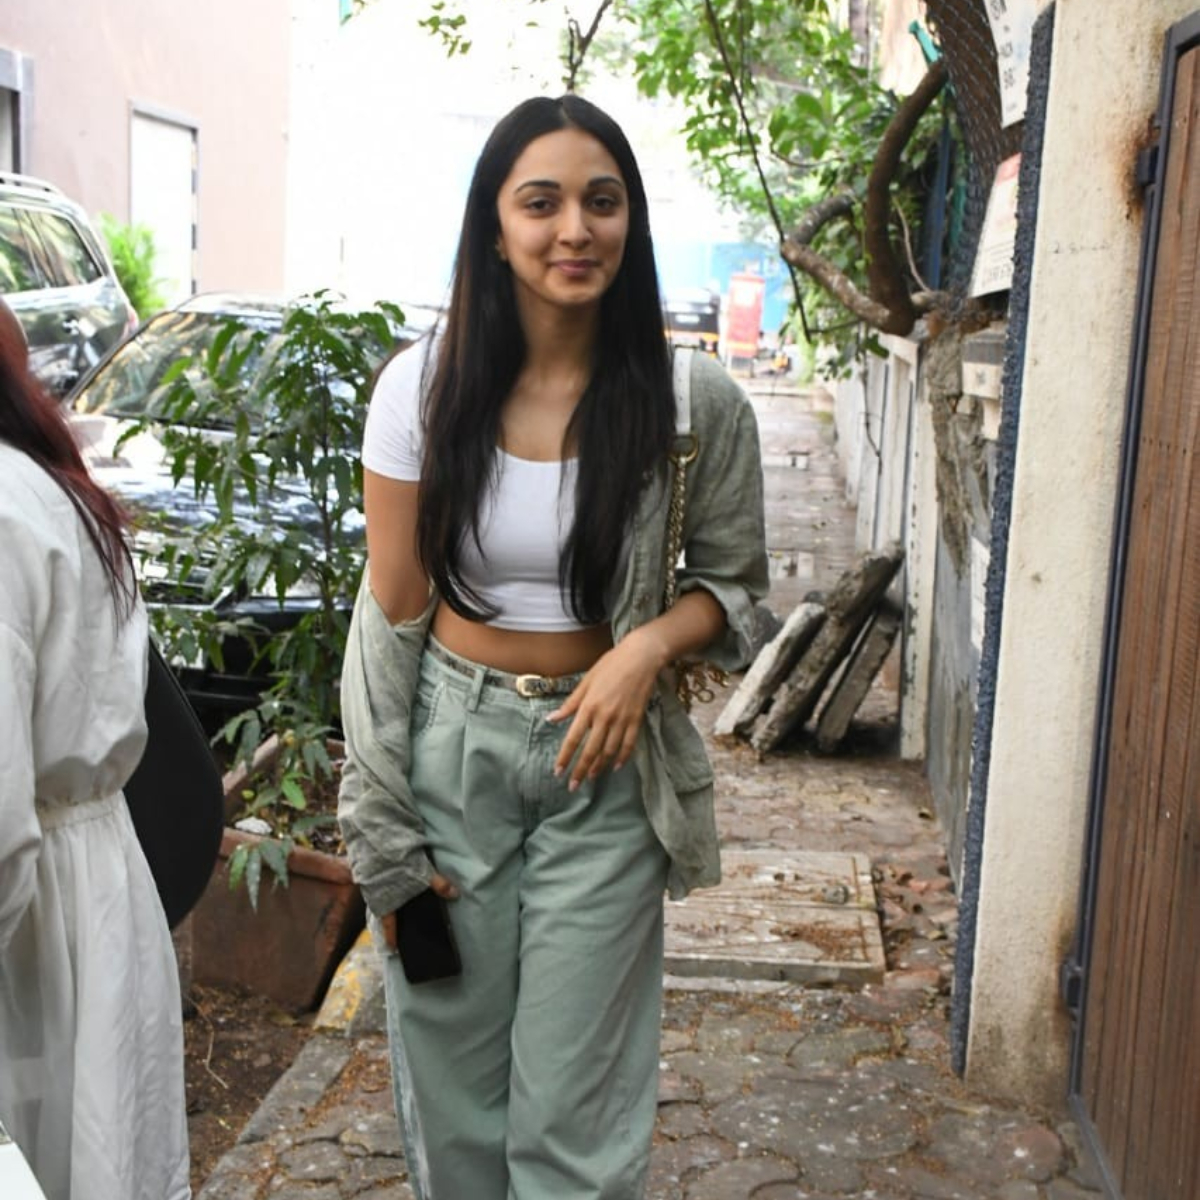 PHOTOS: Kiara Advani's de glam look wins hearts as she gets spotted out and about in the city